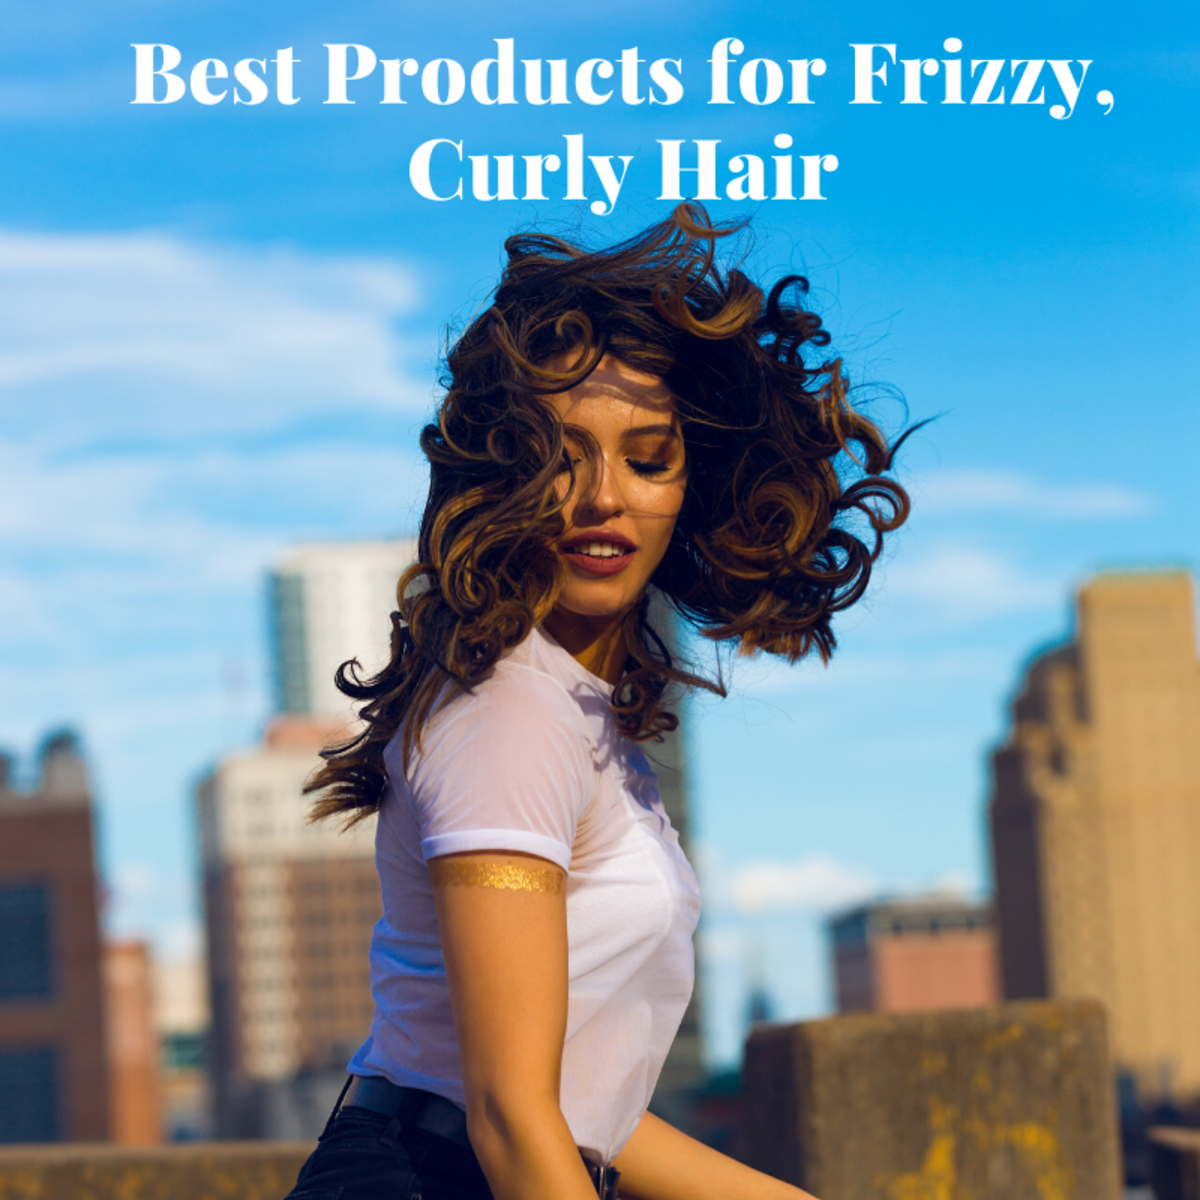 The 6 Best Products for Frizzy, Curly Hair